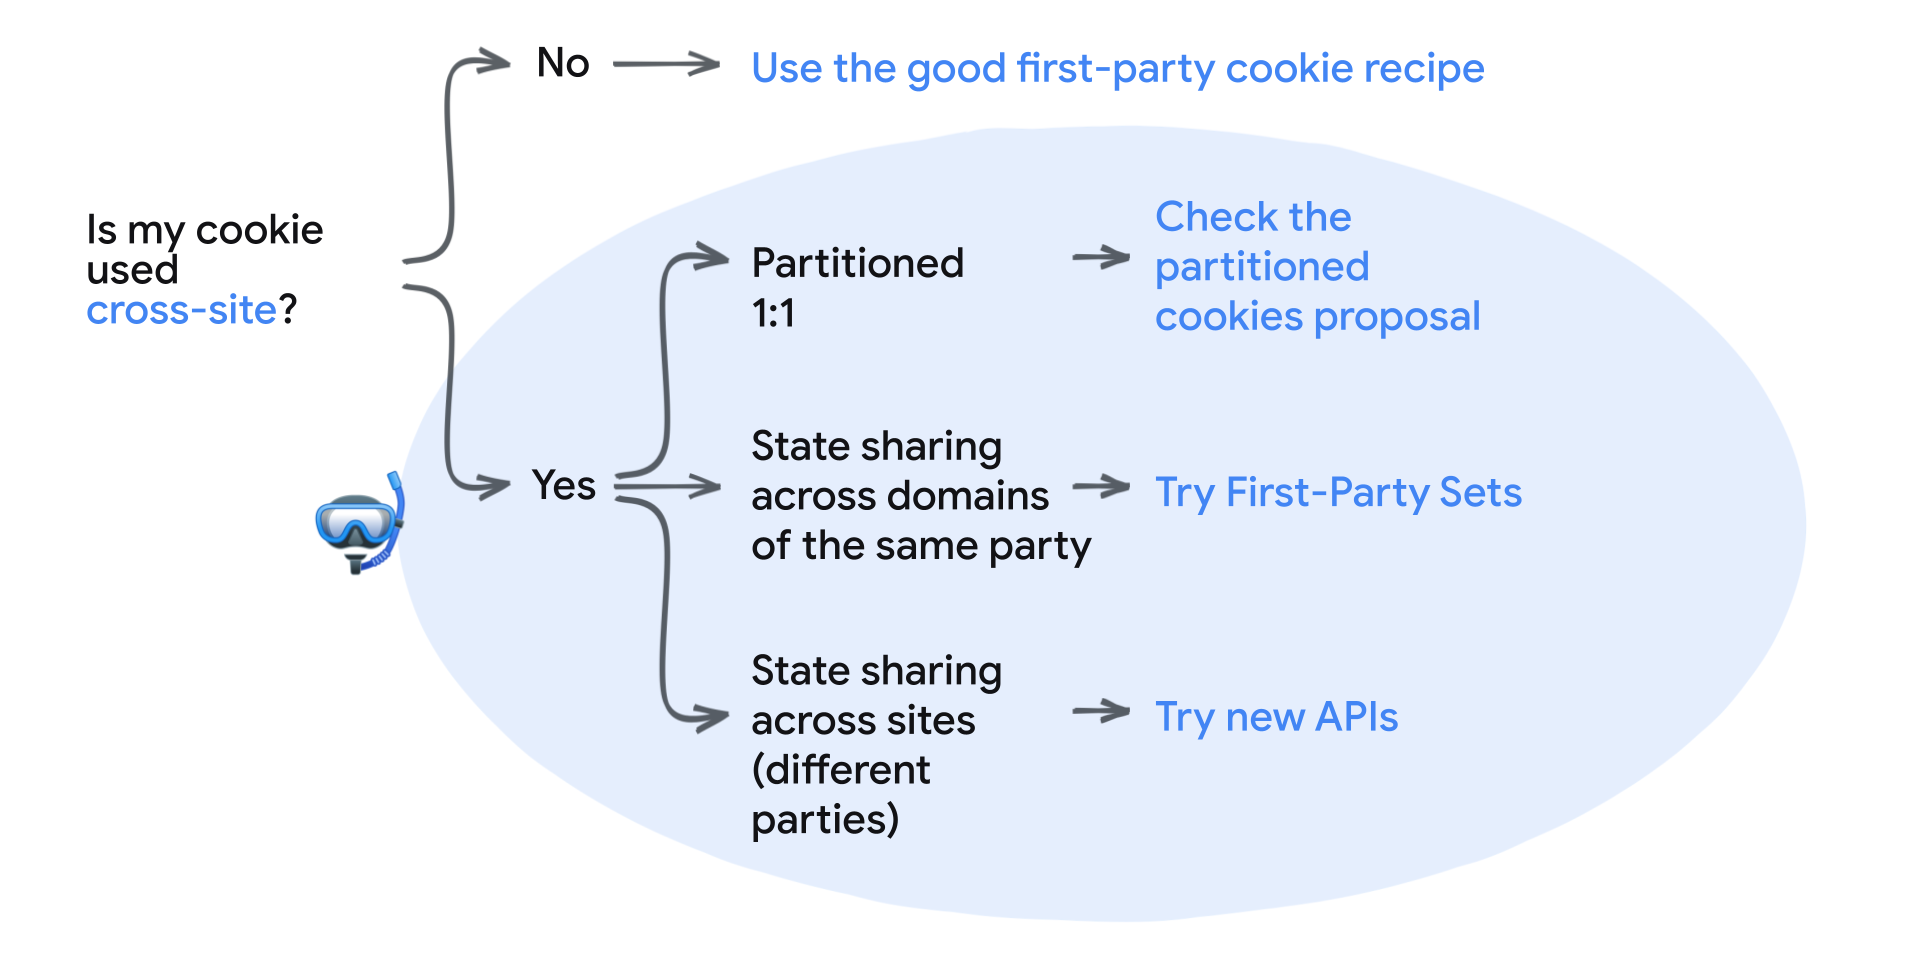 Is my cookie used cross-site? No: Use the good first-party cookie recipe. Yes: Partitioned 1:1 - check the CHIPS proposal, State sharing across domains of the same party - use First-Party Sets, State sharing across sites (different parties) - try the new APIs